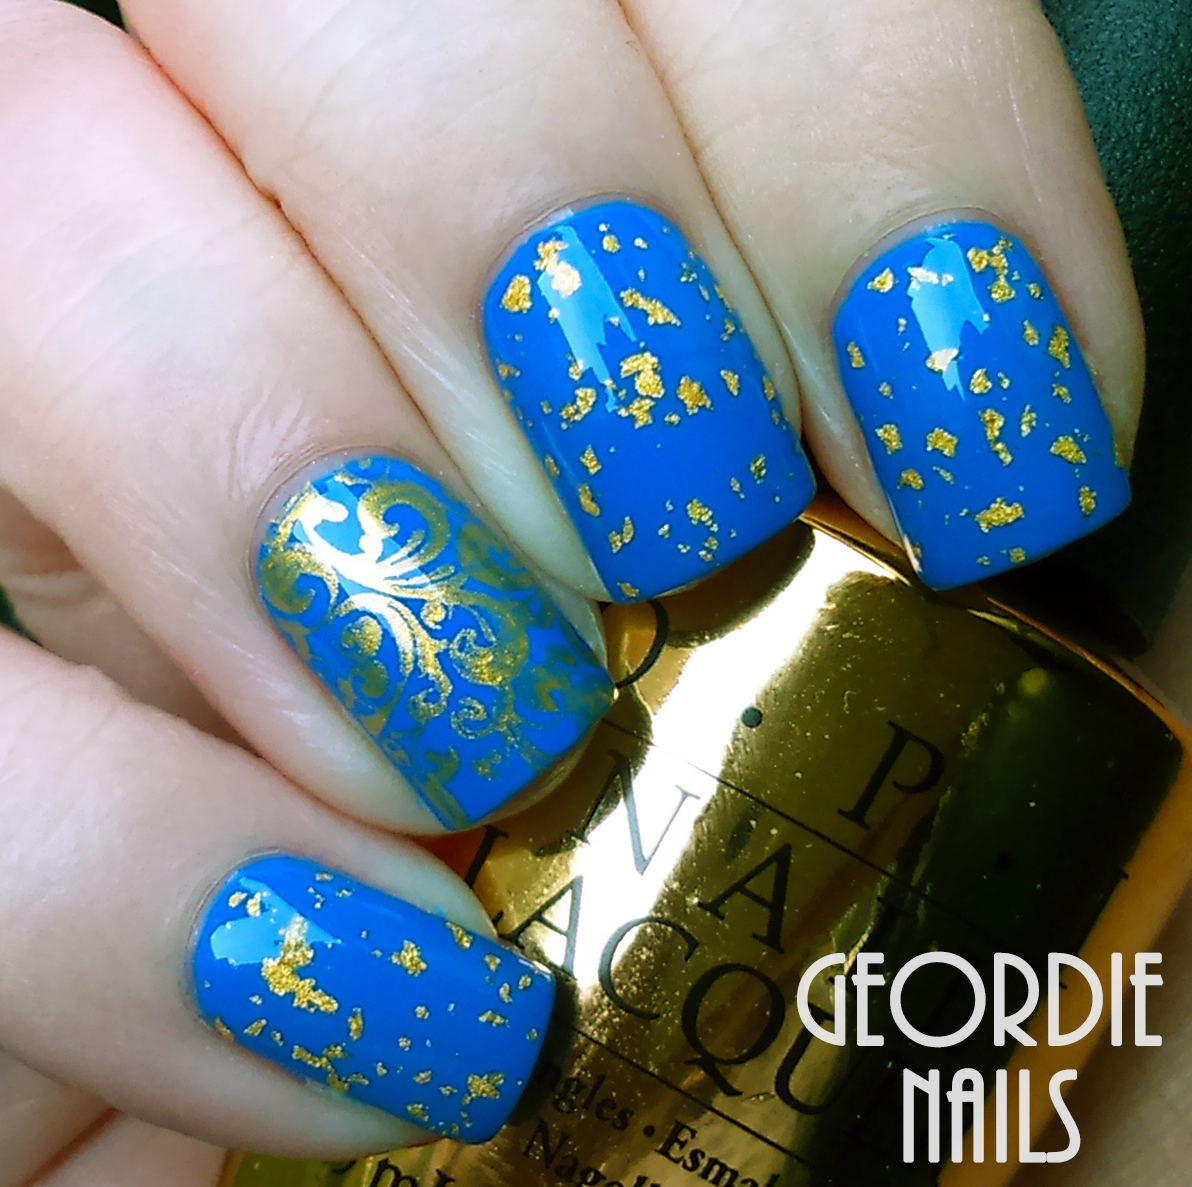 Geordie Nails: January Nail Art Challenge: Fave Animal and Gold